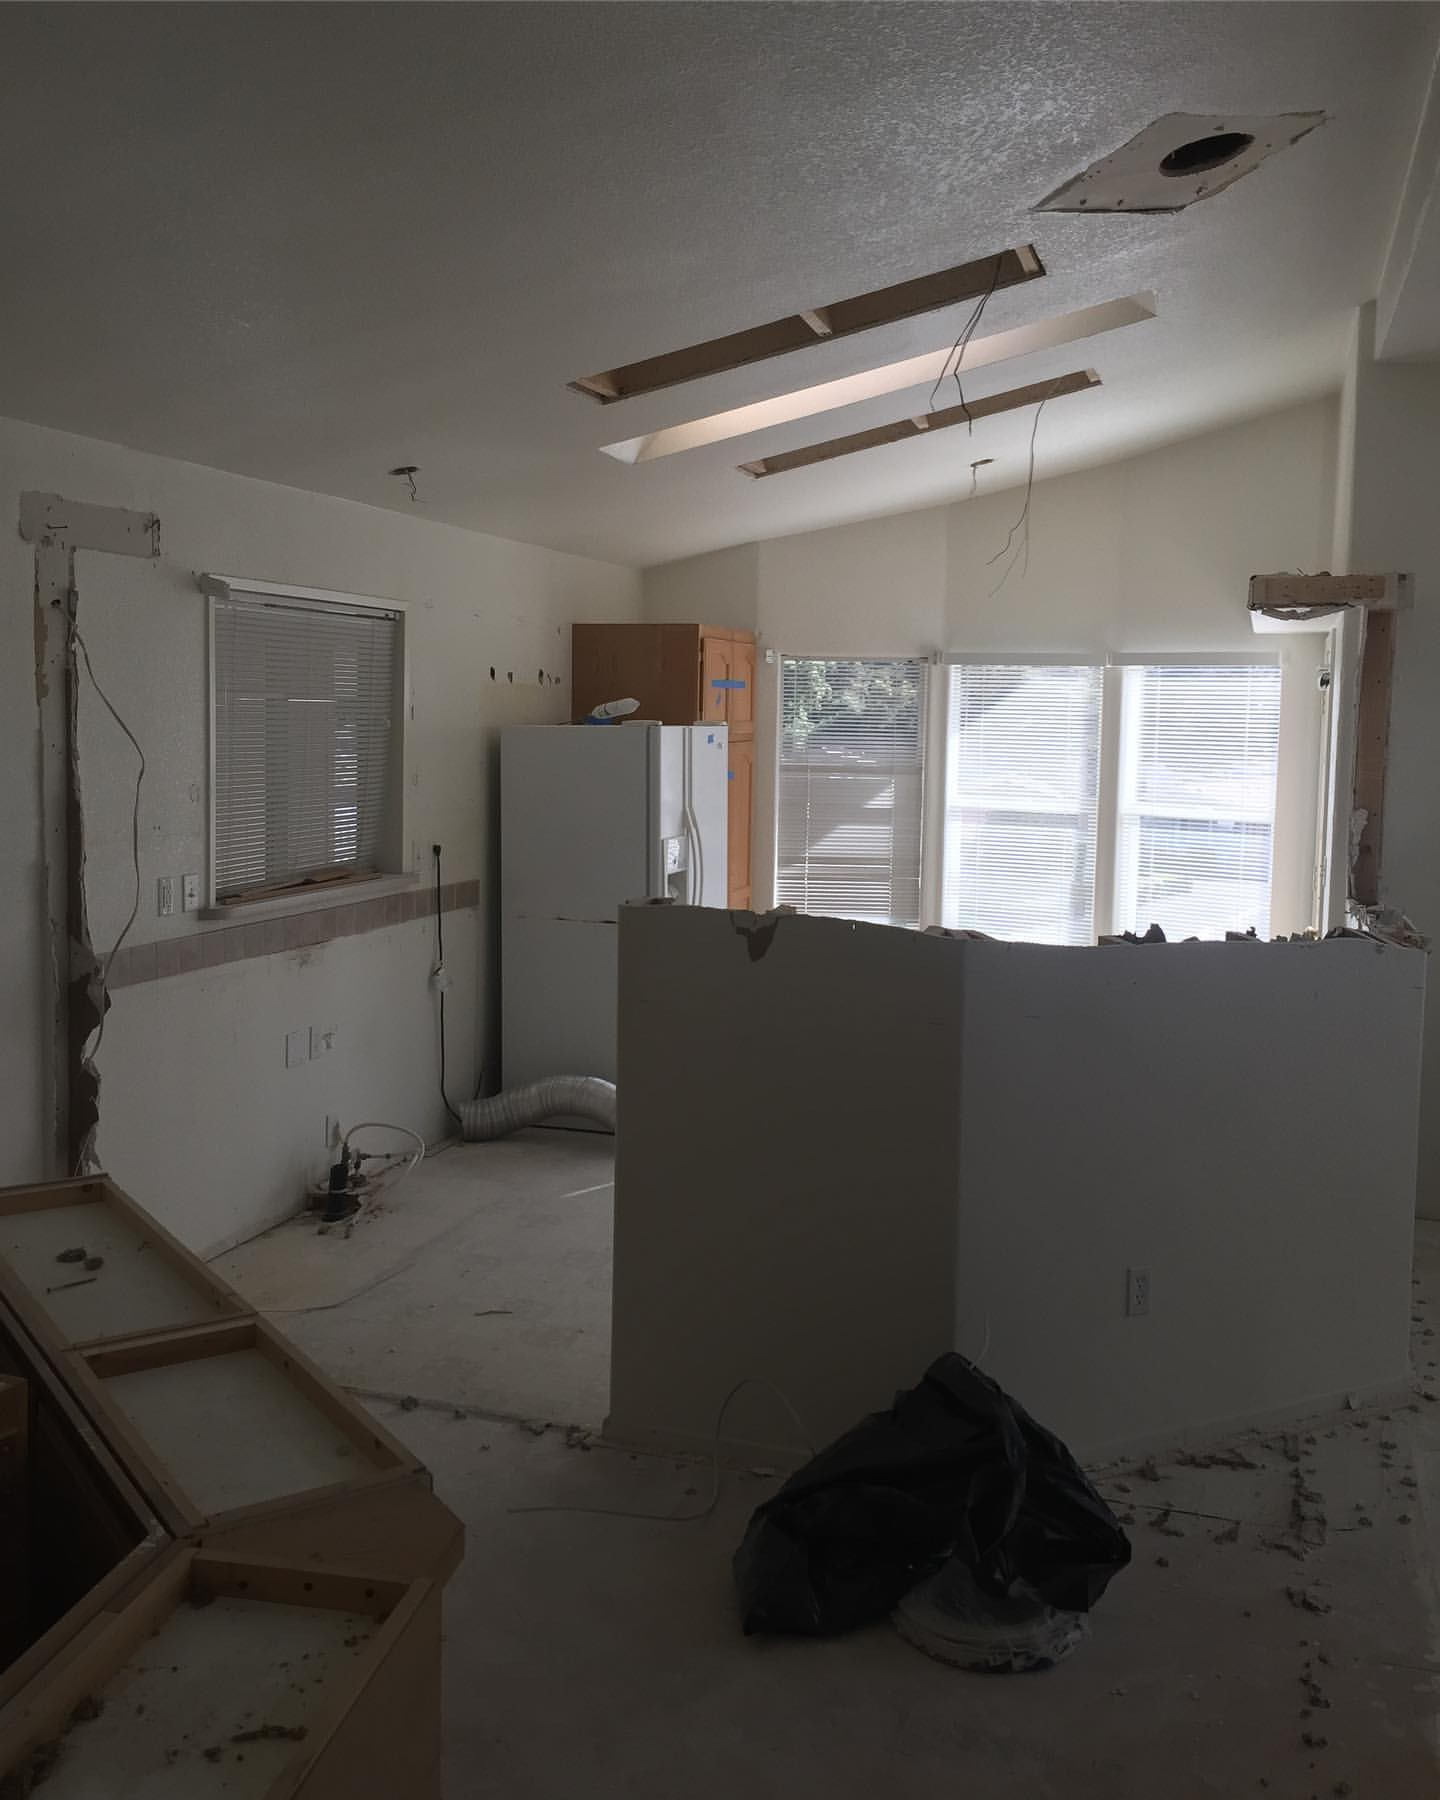 Kitchen remodel plete ⇢ Swipe for the before pictures